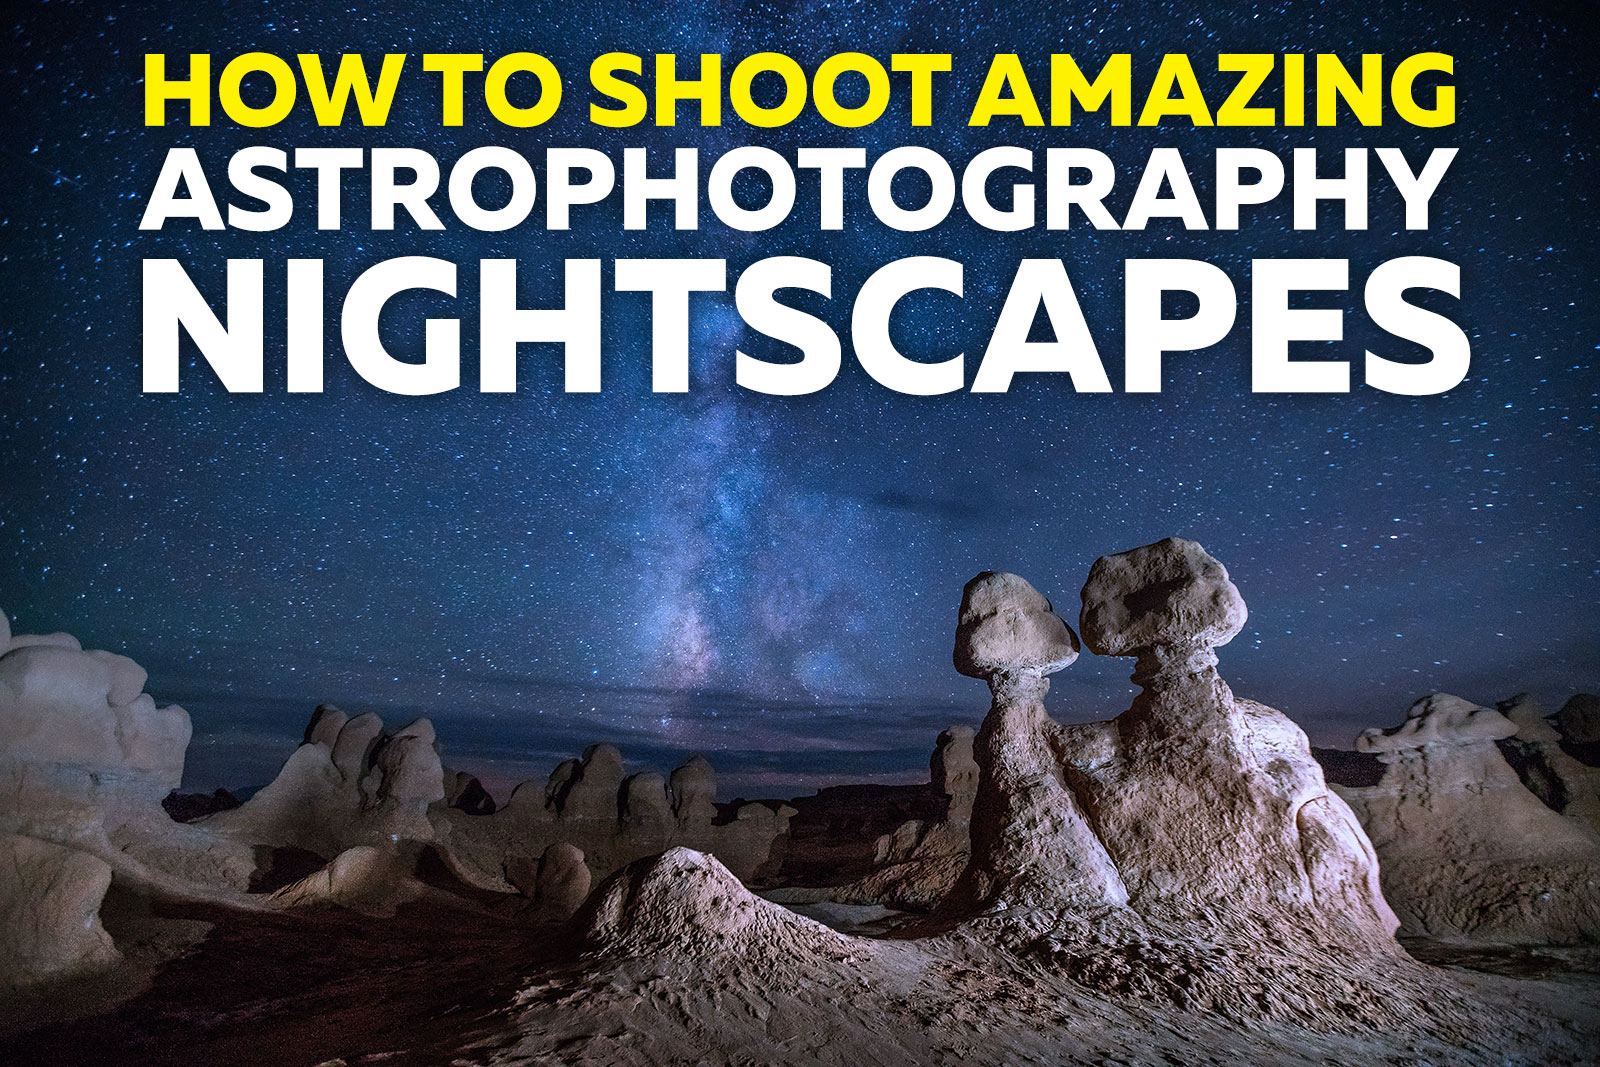 How to Shoot Amazing Astrophotography Nightscapes